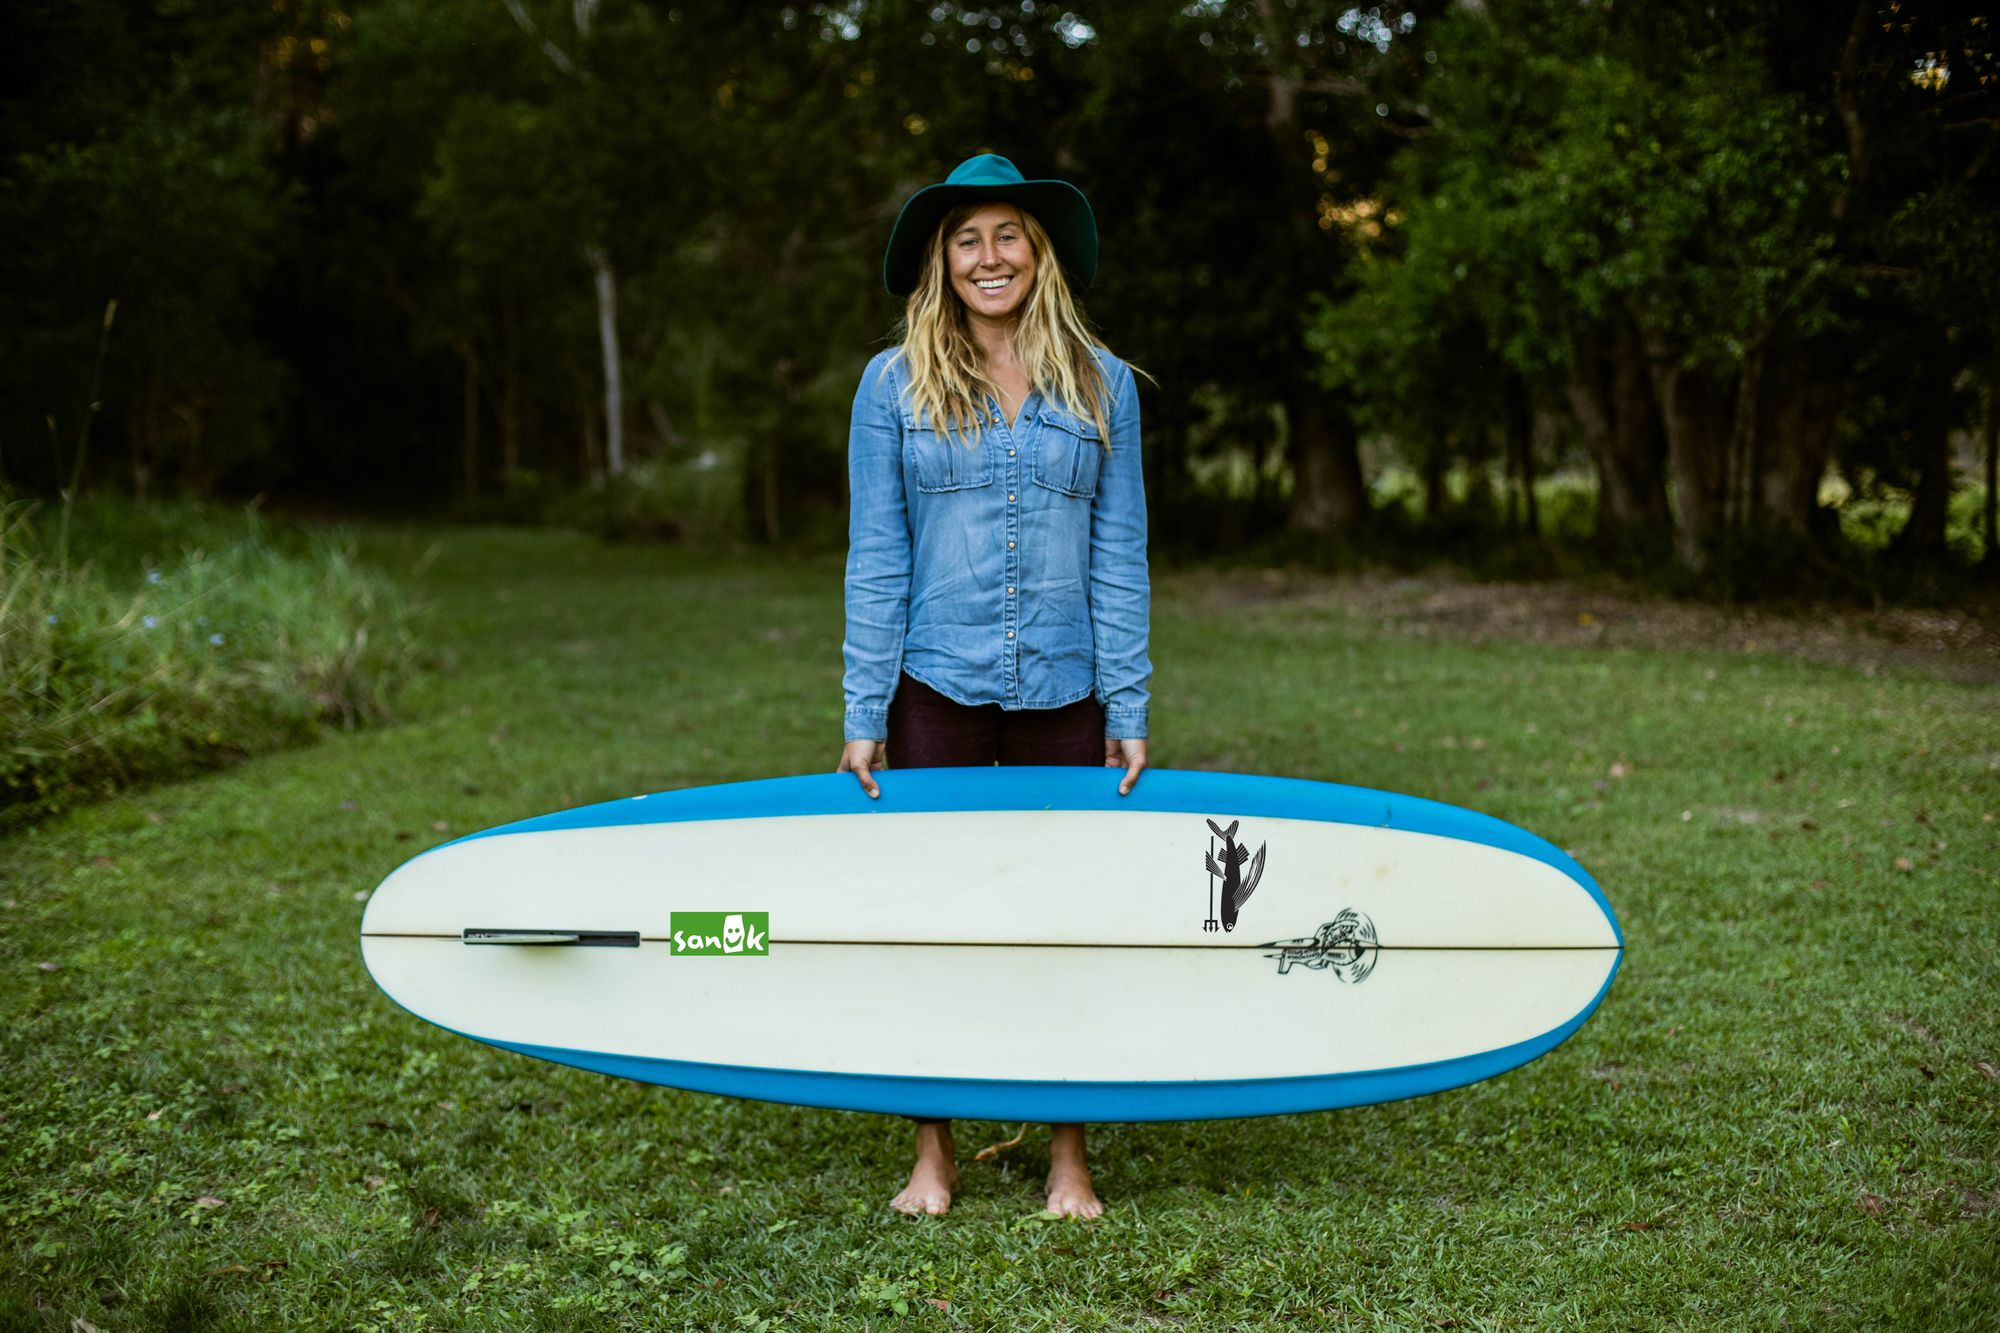 Lauren Hill stands in a plain of grass, with trees behind her, holding her surfboard and smiling.